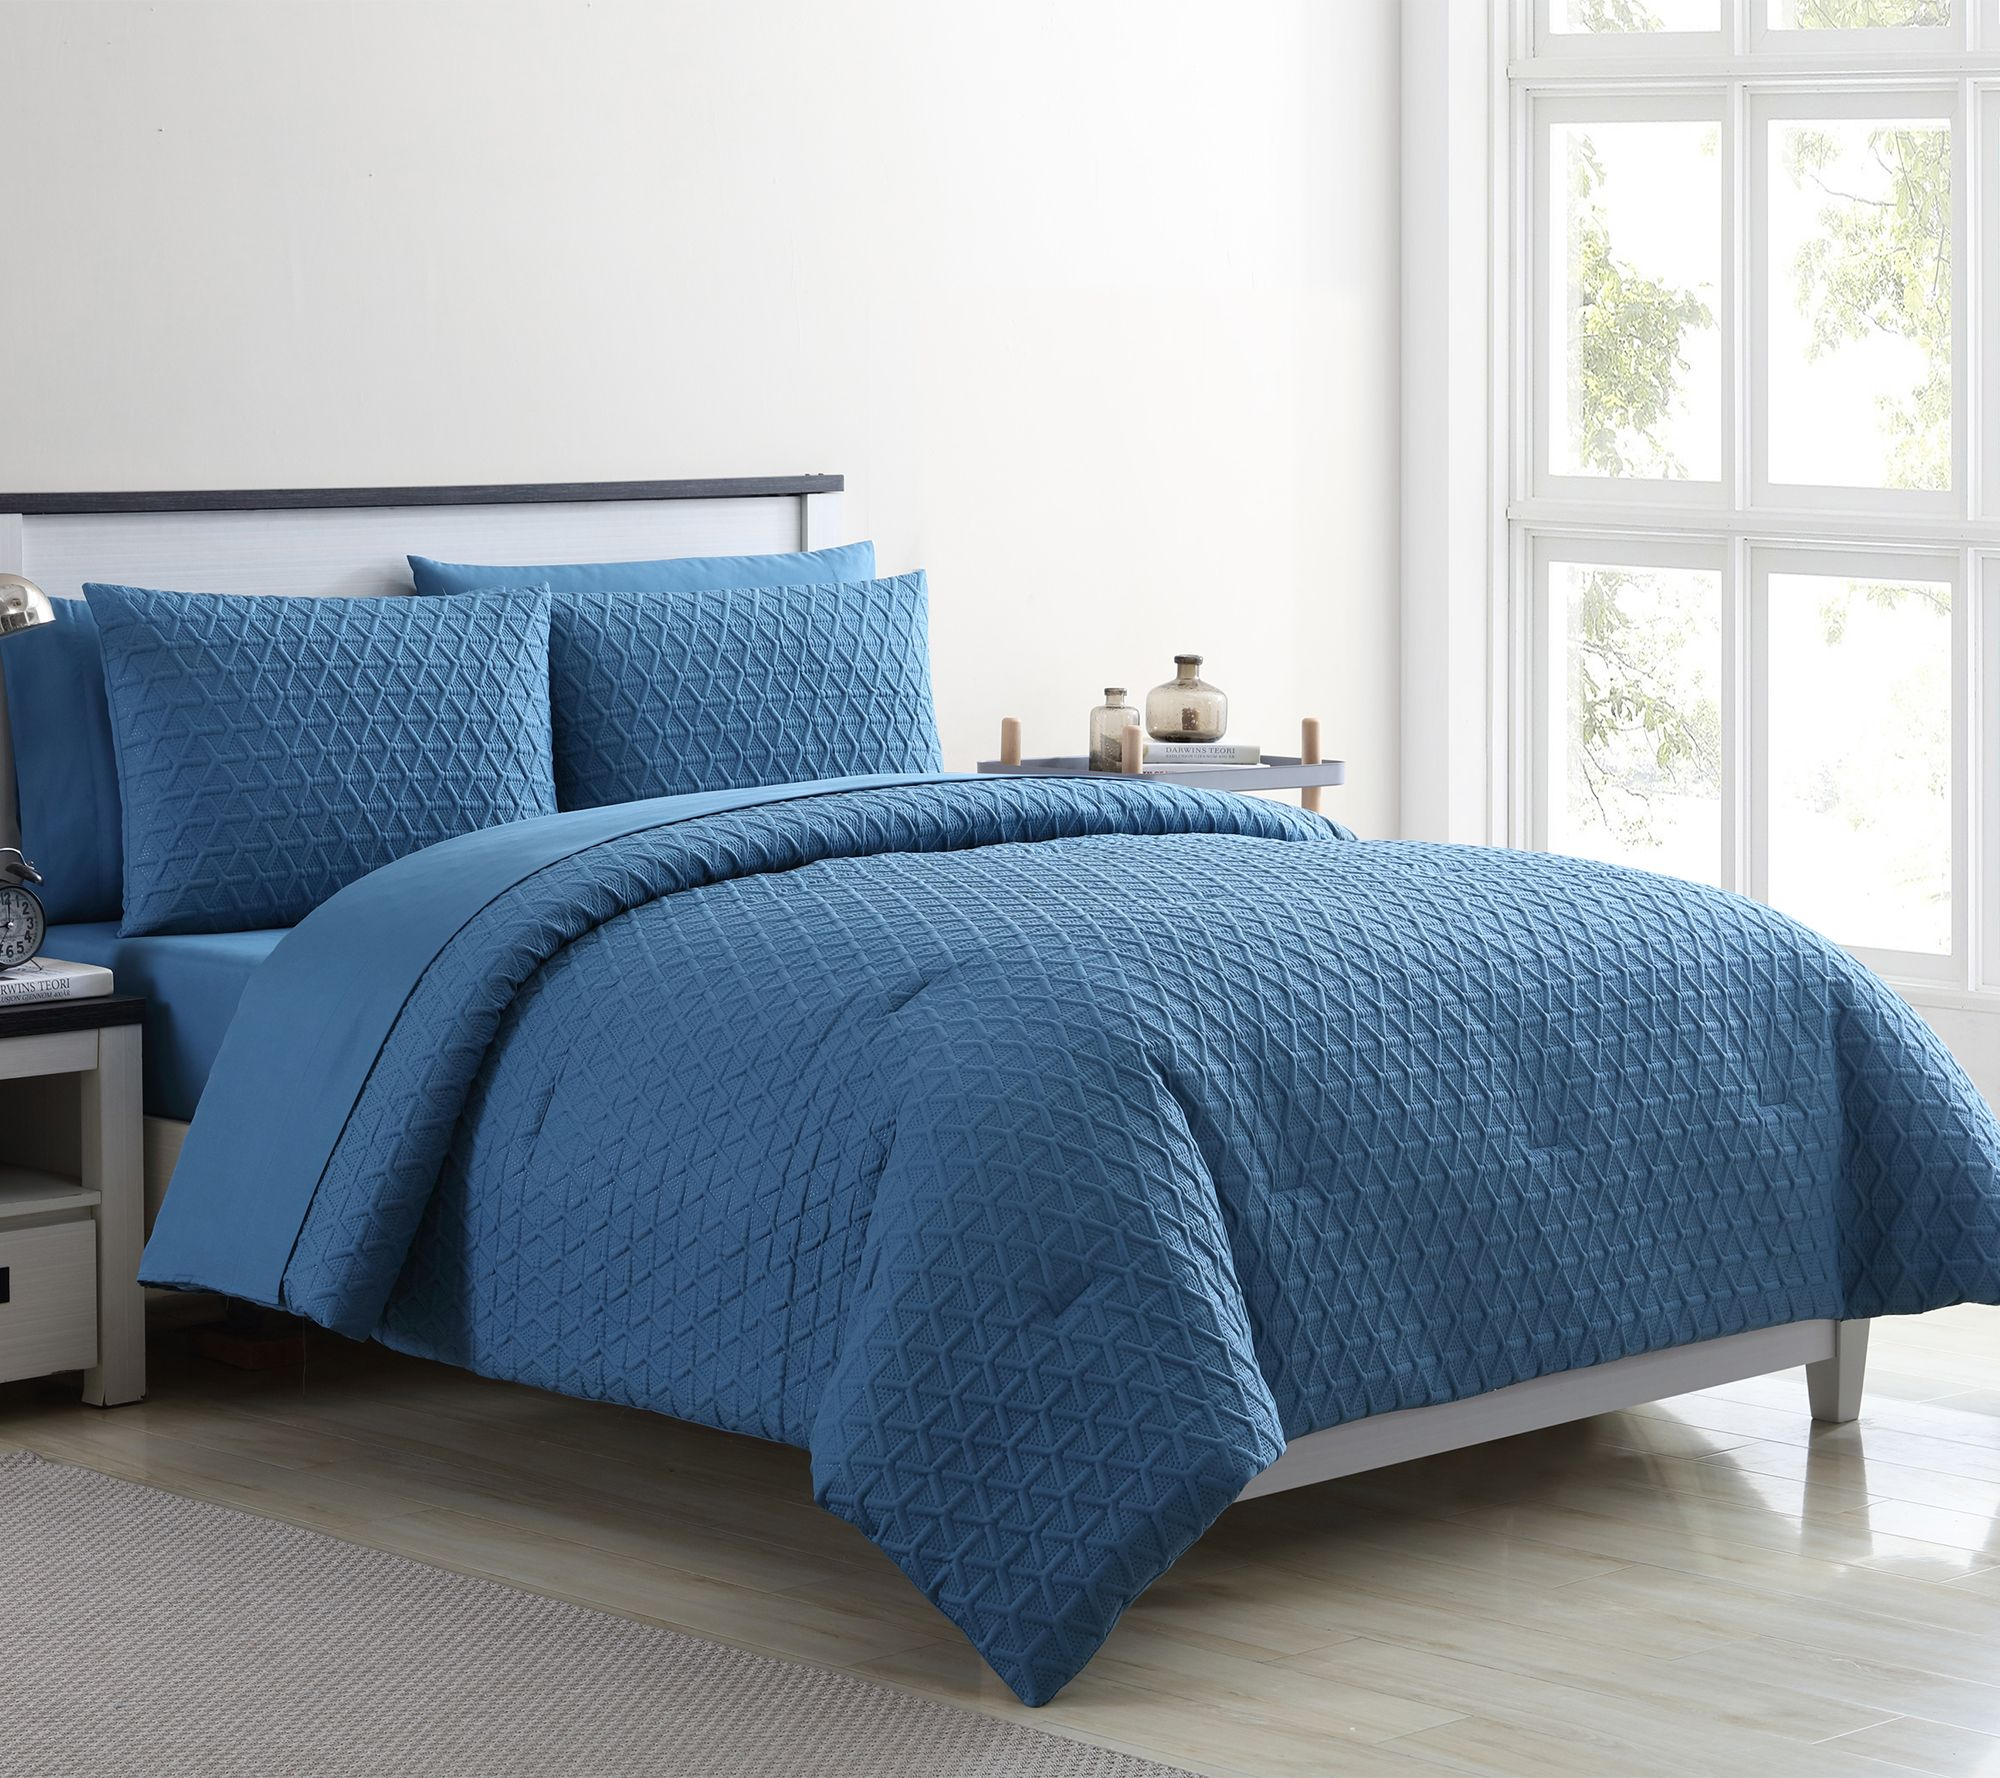 VCNY Home Mykonos 7-Piece King Bed In A Bag Comforter Set — QVC.com